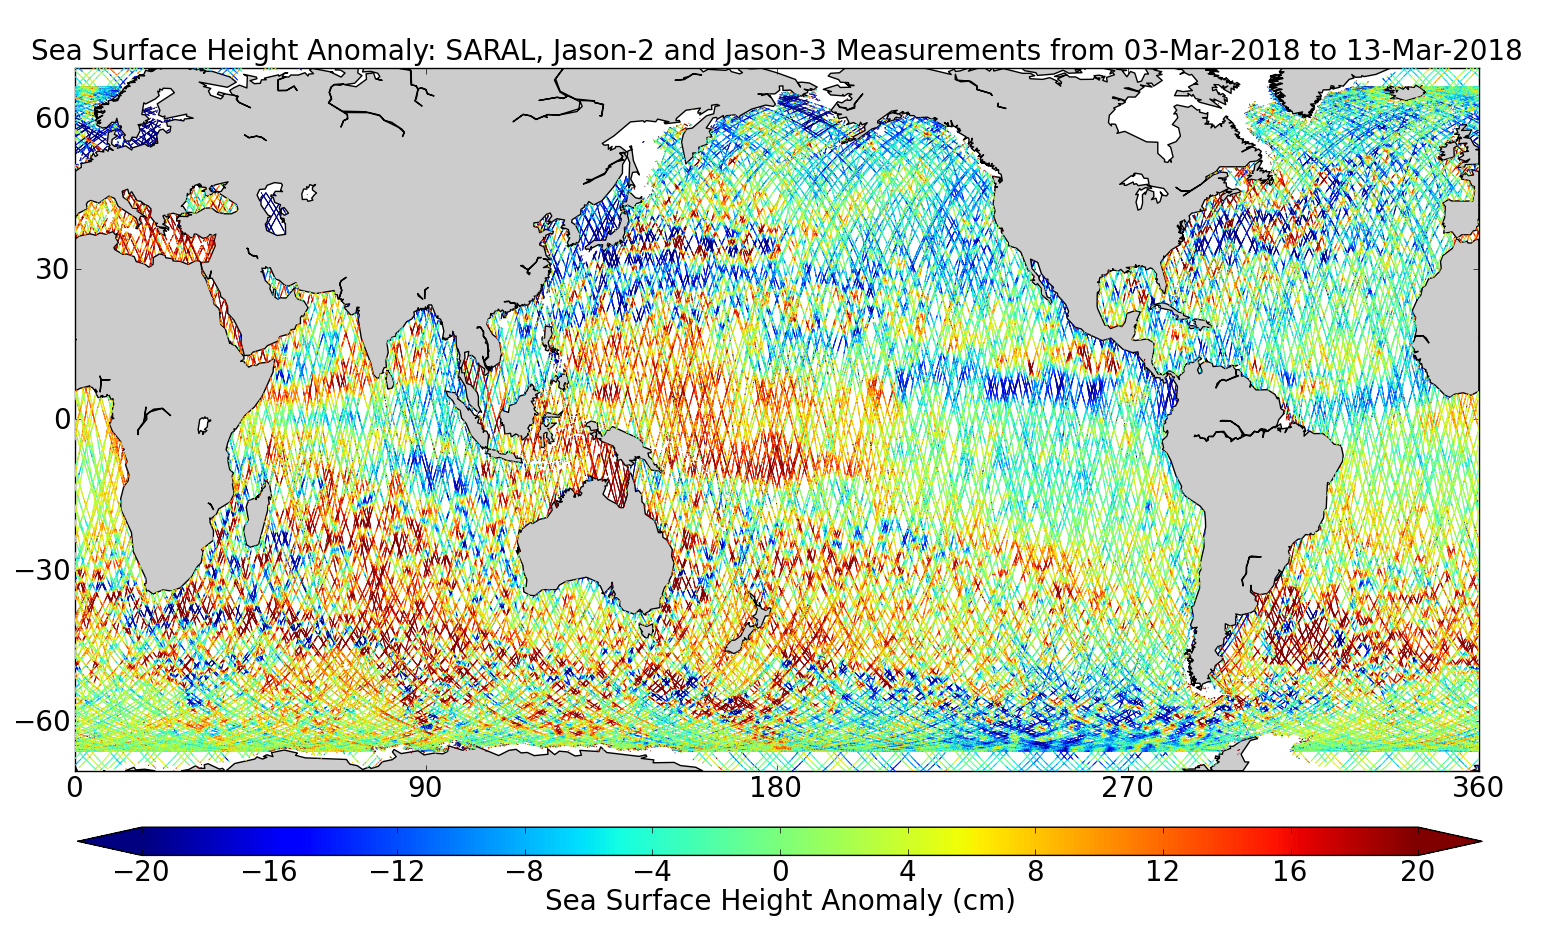 Sea Surface Height Anomaly: SARAL, Jason-2 and Jason-3 Measurements from 03-Mar-2018 to 13-Mar-2018